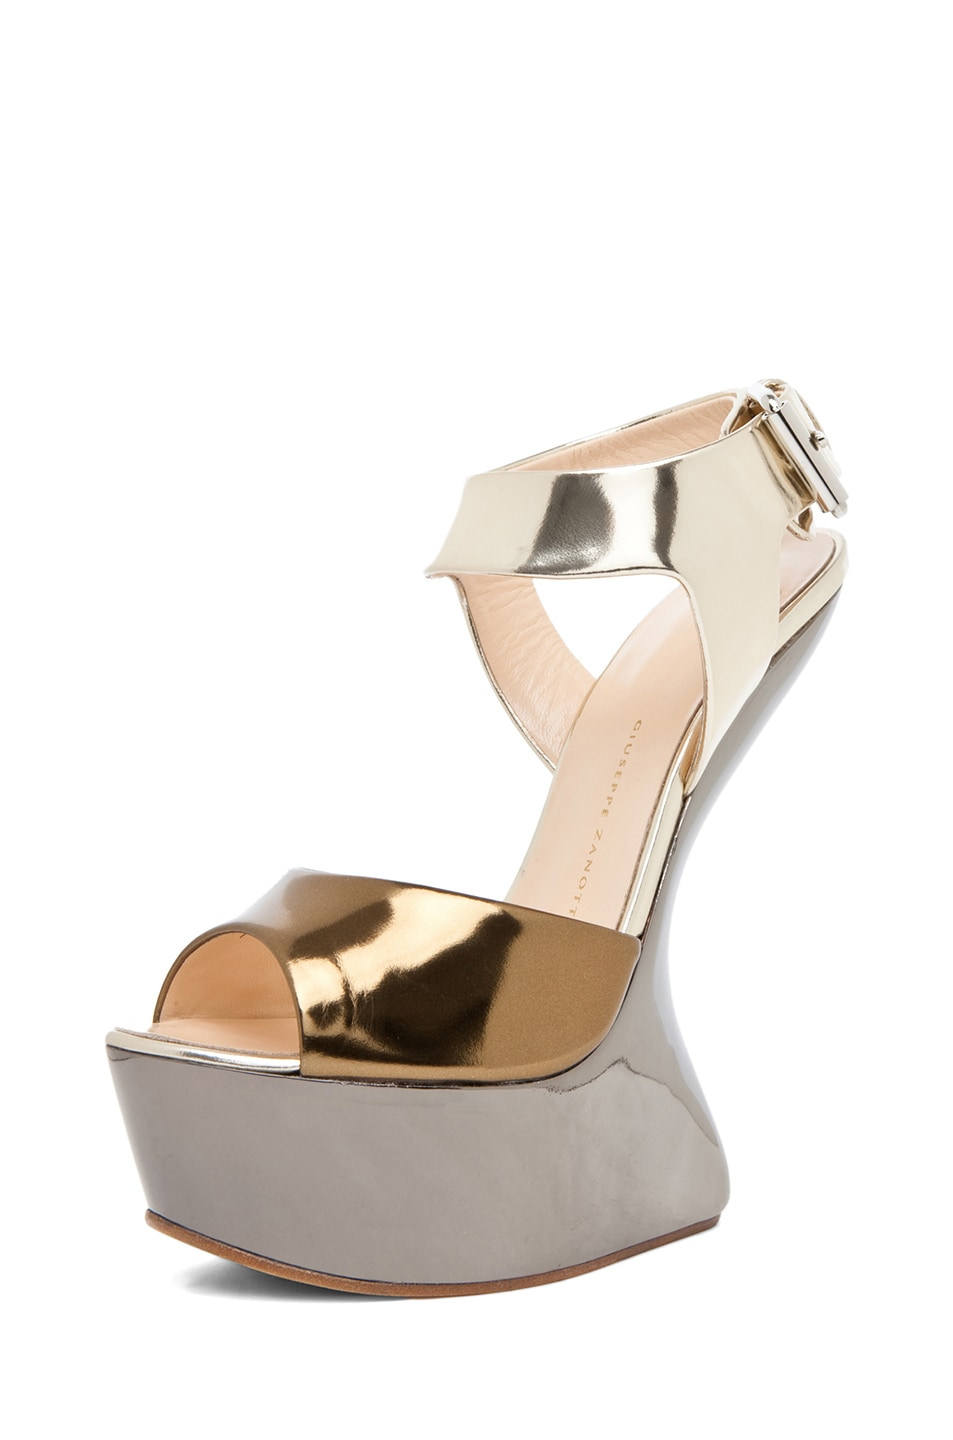 Image 2 of Giuseppe Zanotti Mirrored Wedge Sandal in Mixed Metallic